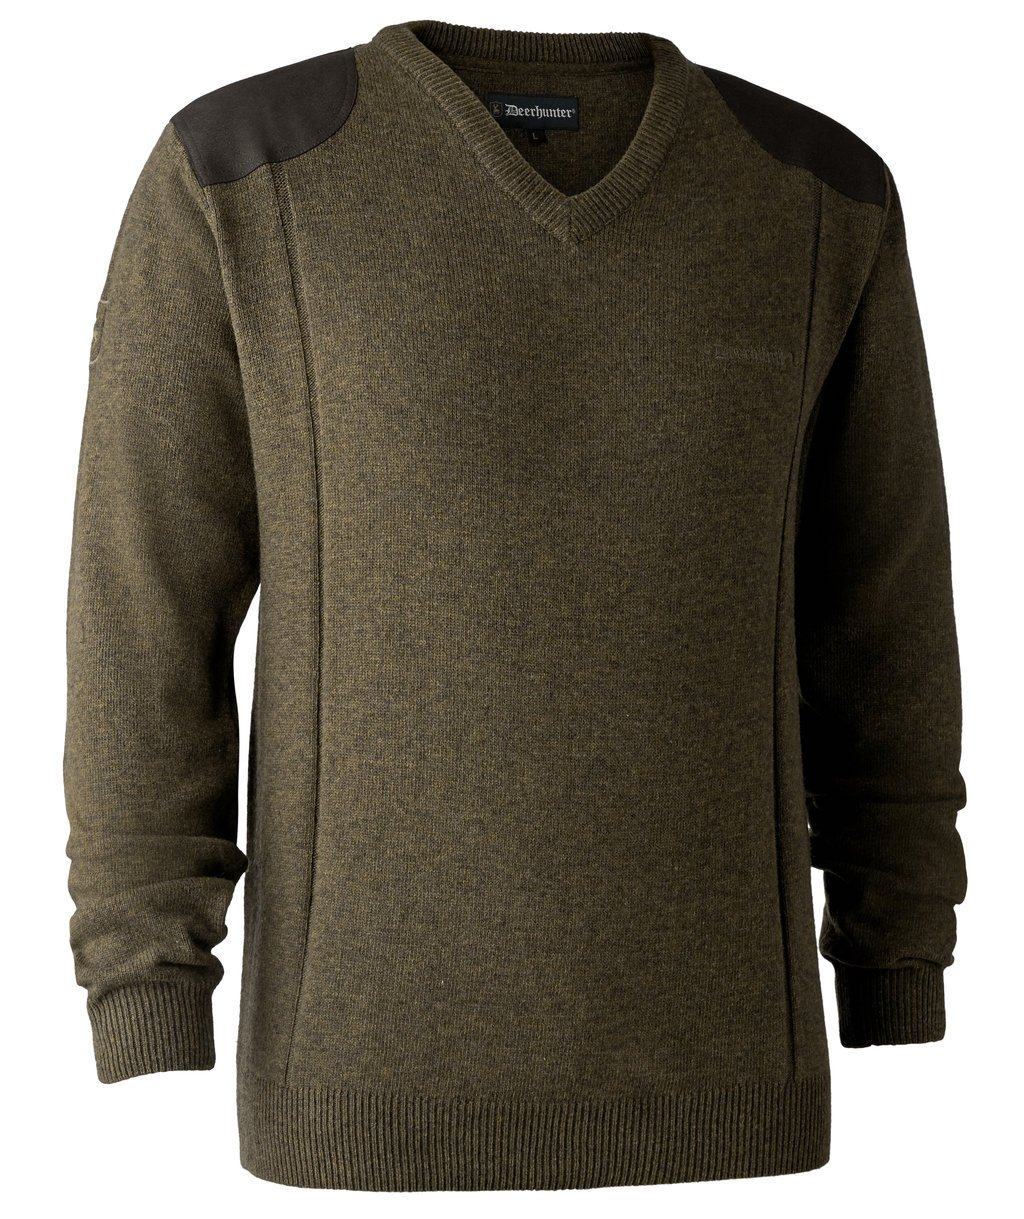 Deerhunter Sheffield Strickpullover, Zypresse